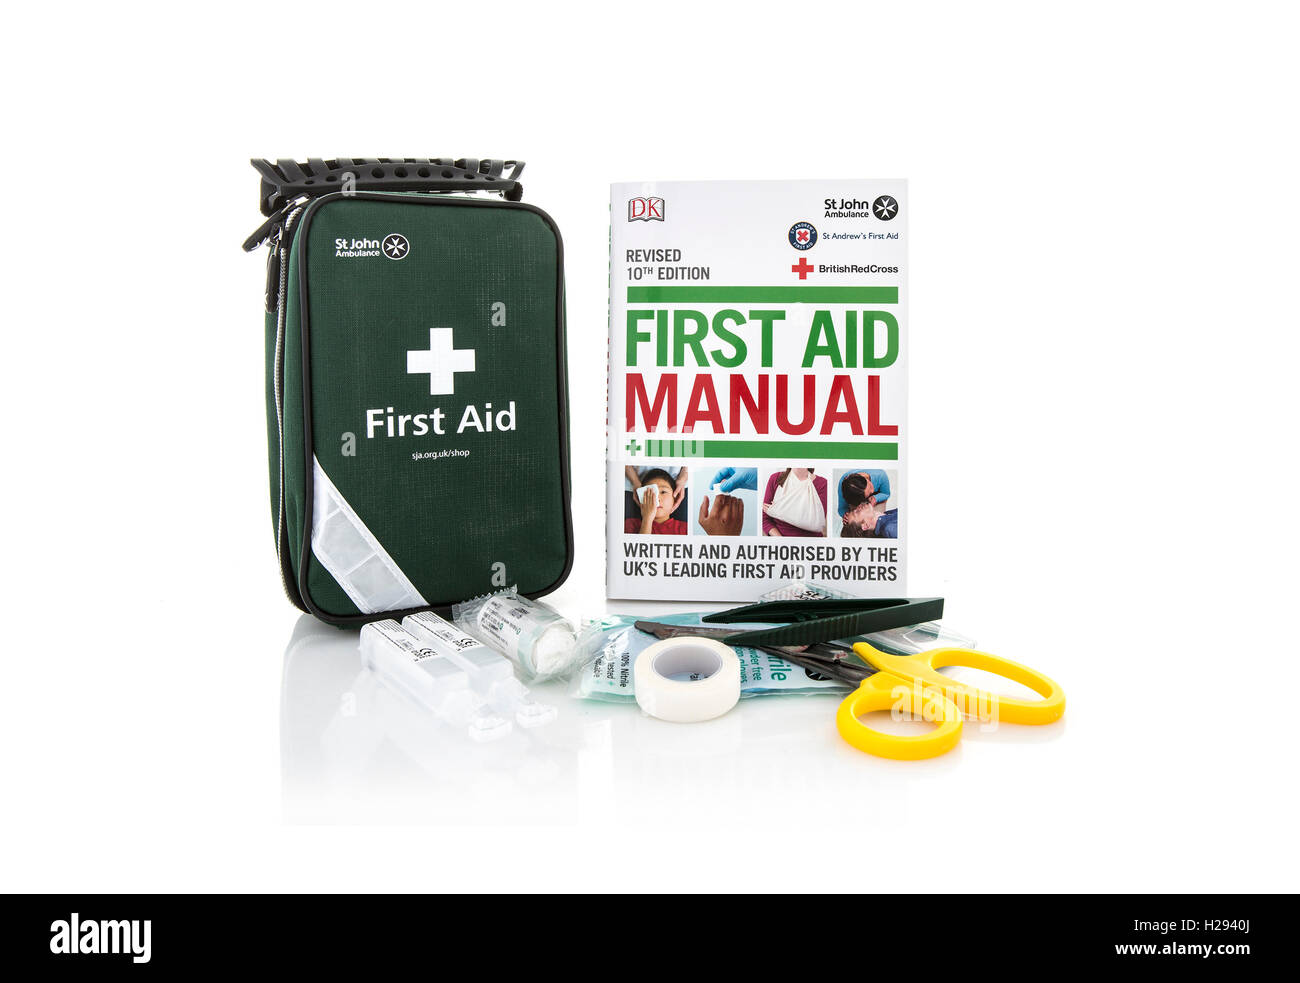 St John Ambulance First Aid Kit and Manual on a white background - Stock Image